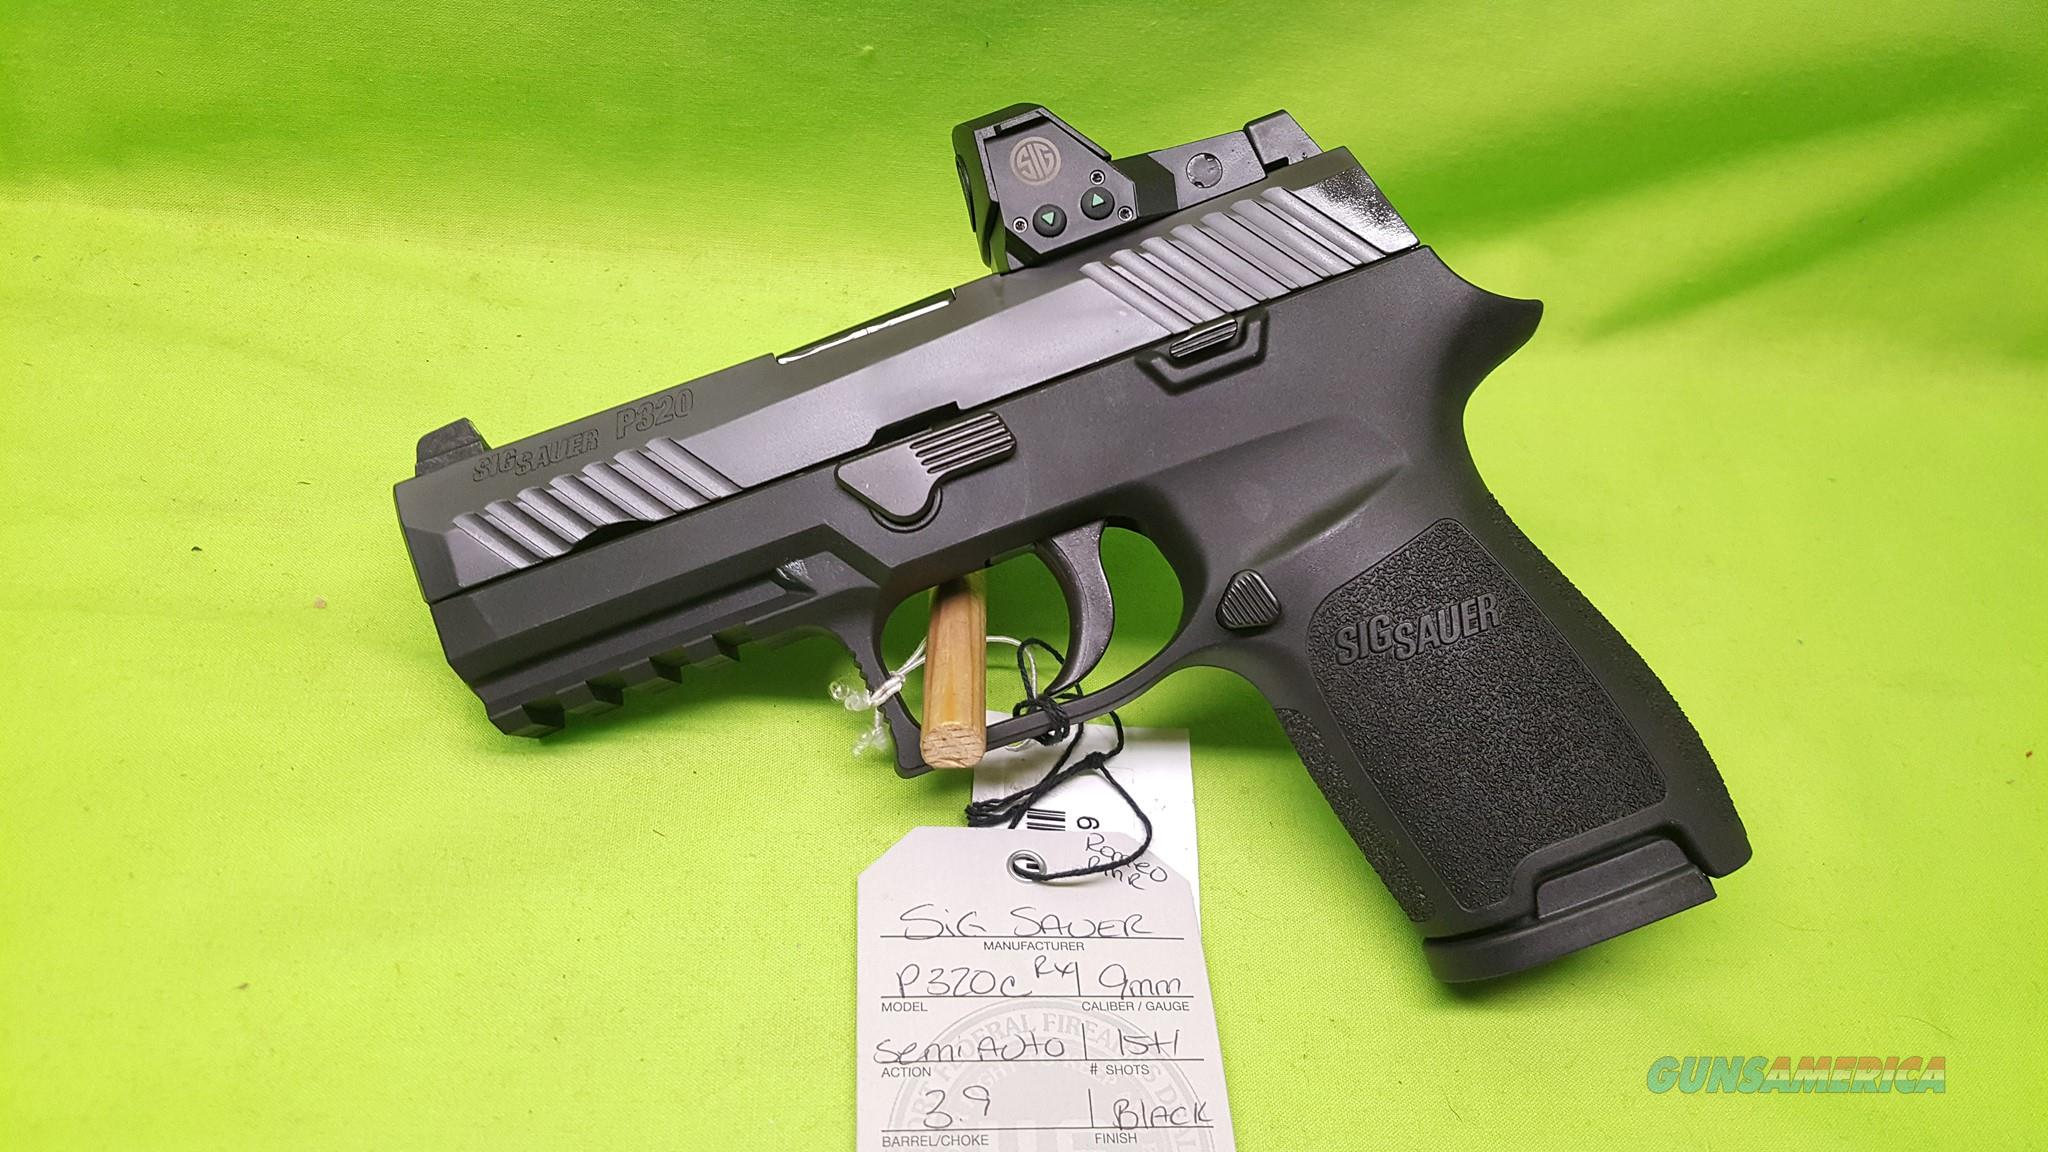 SIG SAUER P320 RX C COMPACT 9MM 3.9 15RD P320RX 9  Guns > Pistols > Sig - Sauer/Sigarms Pistols > Other